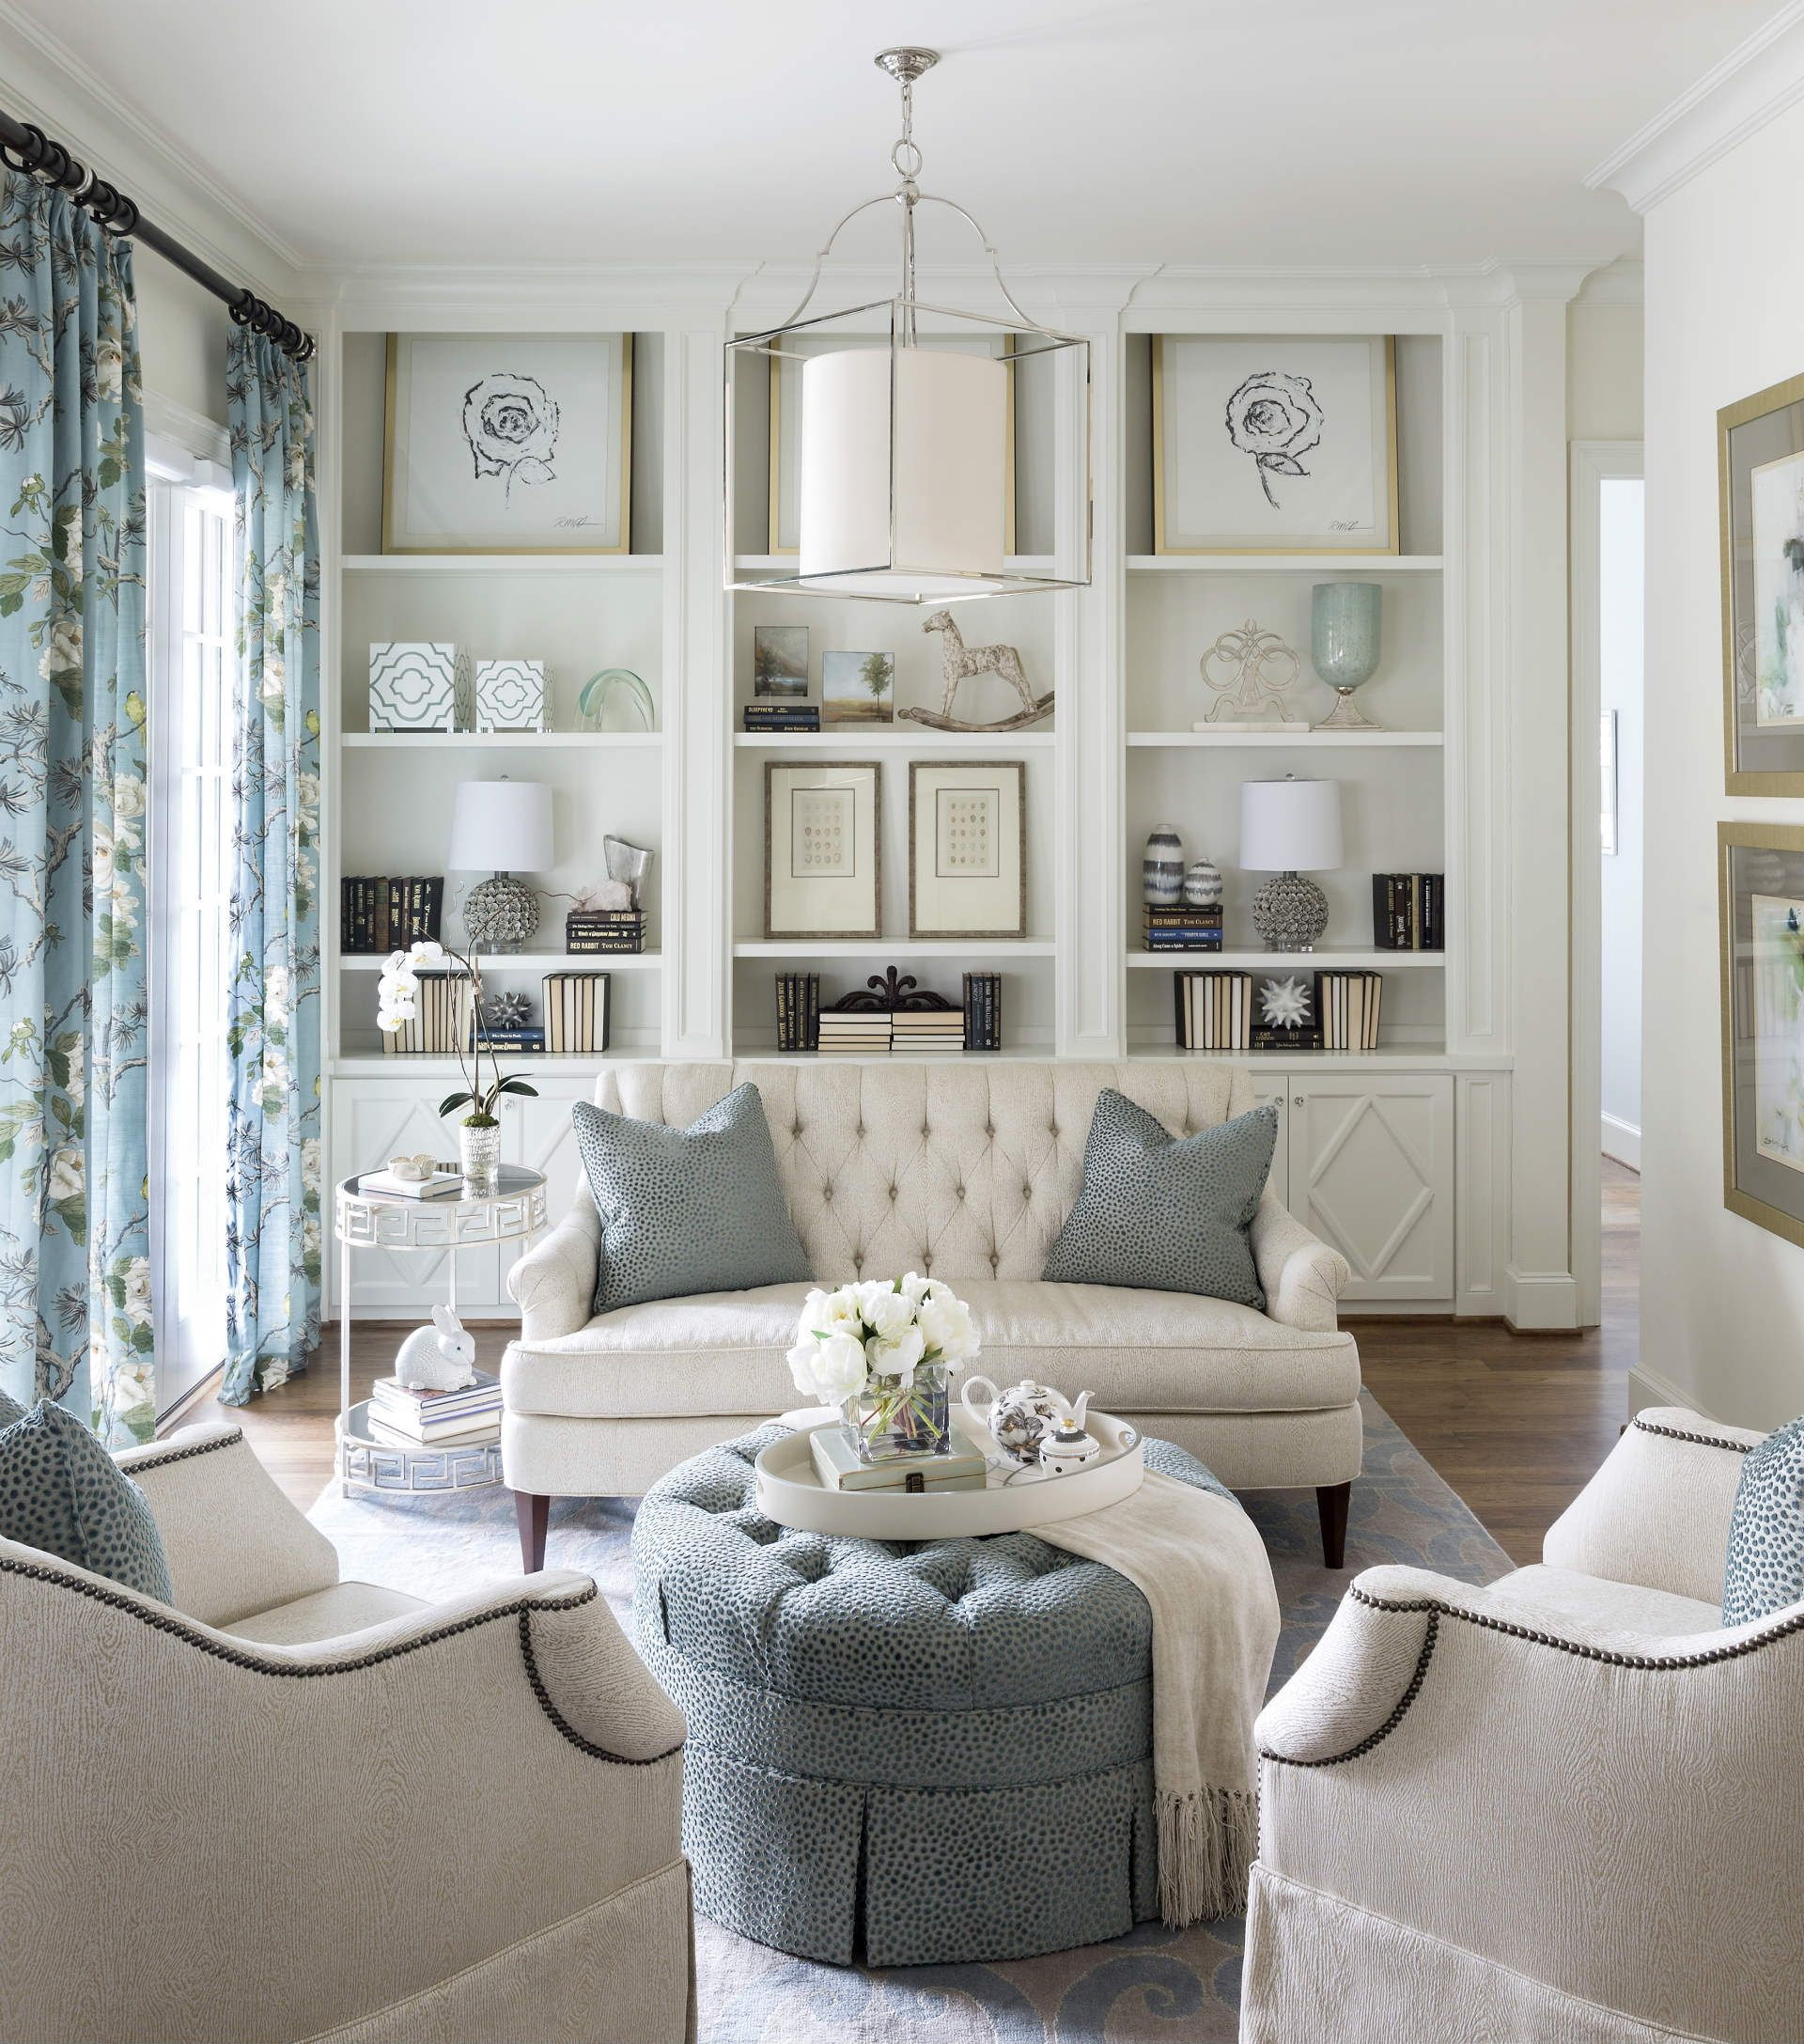 Room Decor Furniture Interior Design Idea Neutral Room: Southern Home Magazine